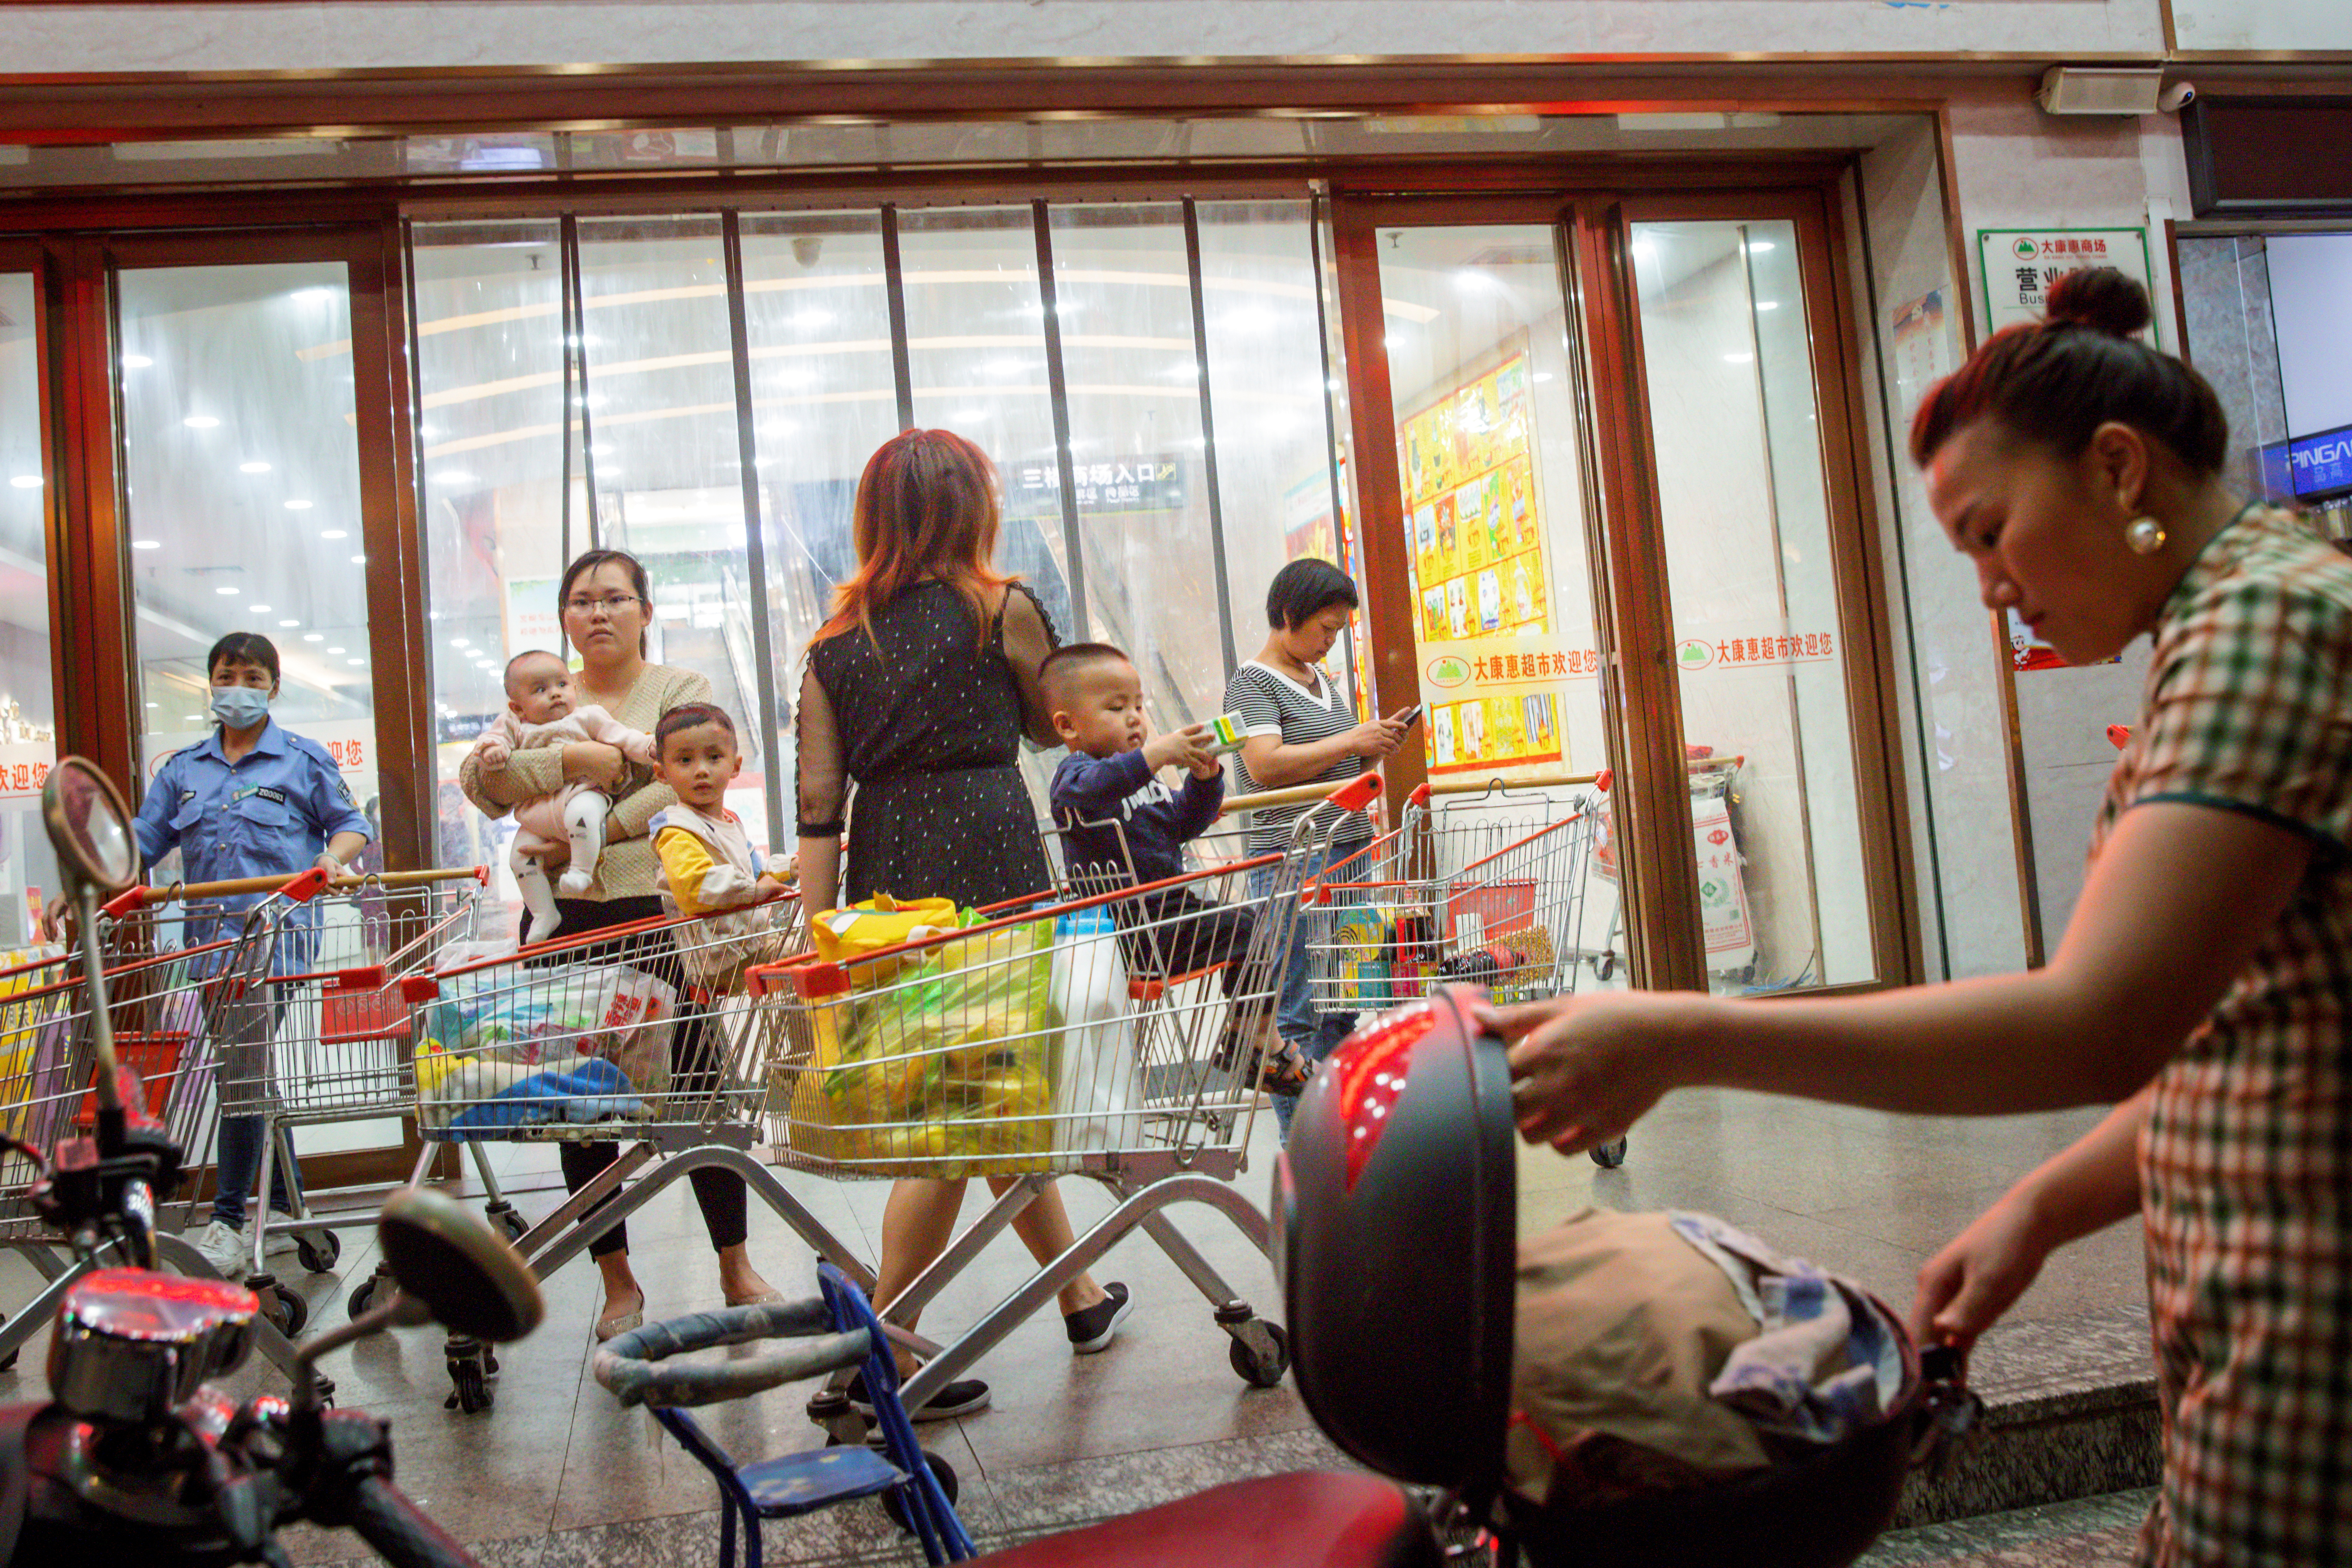 A woman holds a baby outside a supermarket in Qinzhou, Guangxi province, China, April 12, 2021. Picture taken April 12, 2021.  REUTERS/Thomas Peter